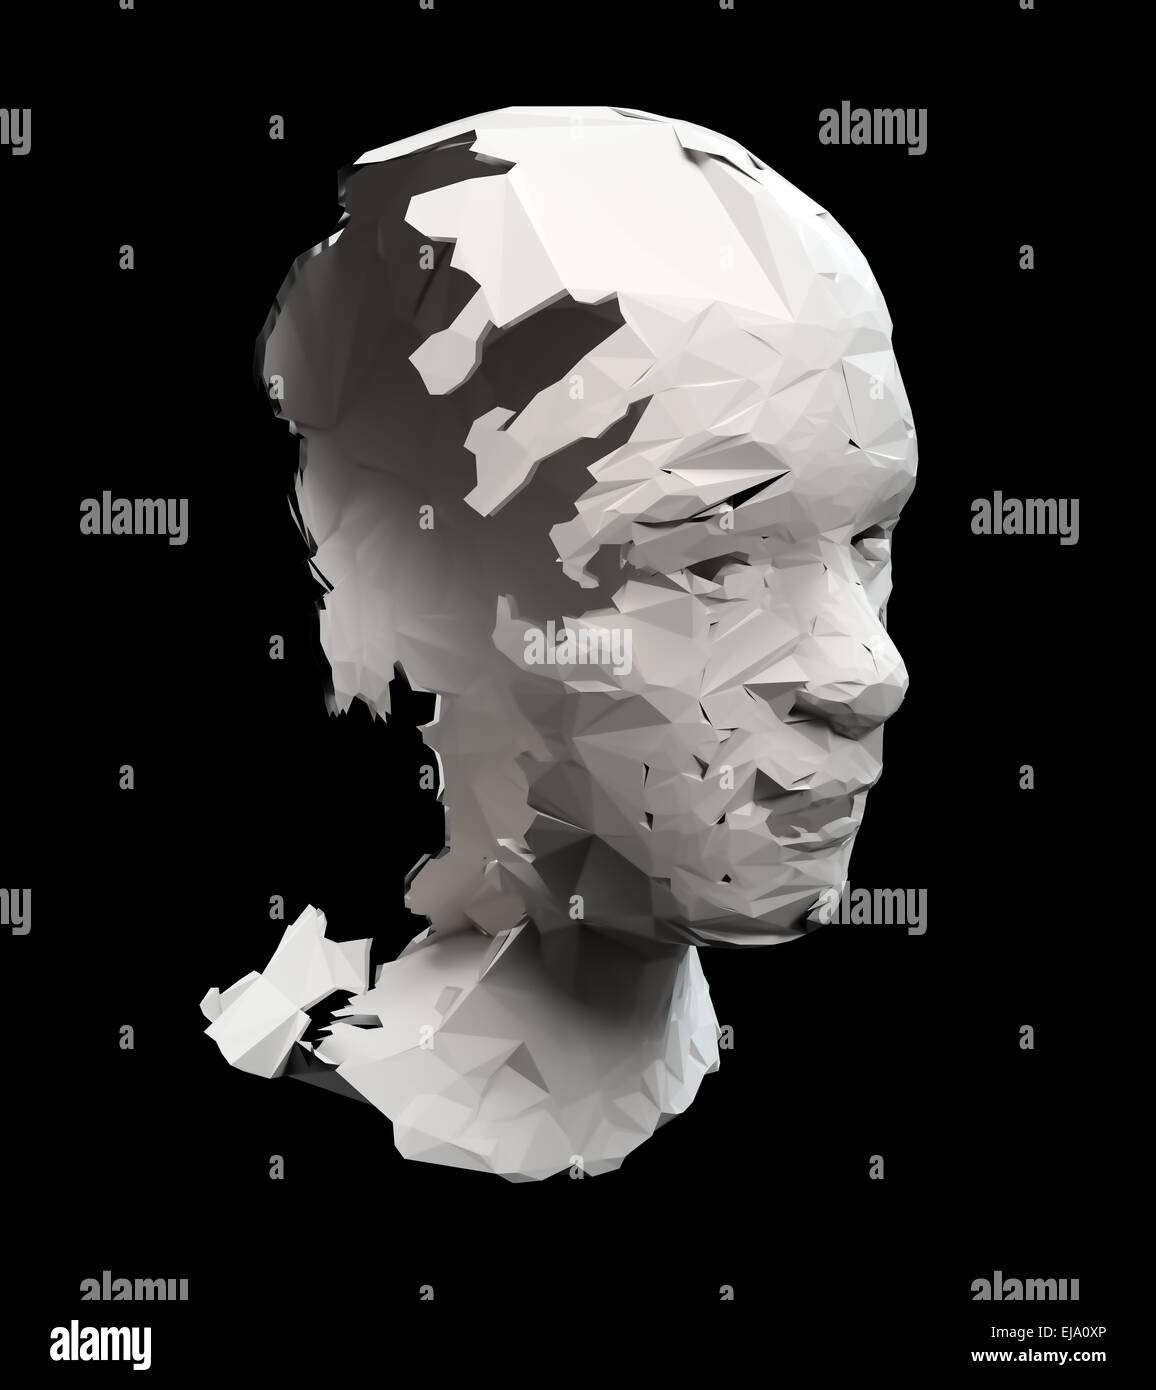 Broken head Sculpture - dépression concept illustration Photo Stock